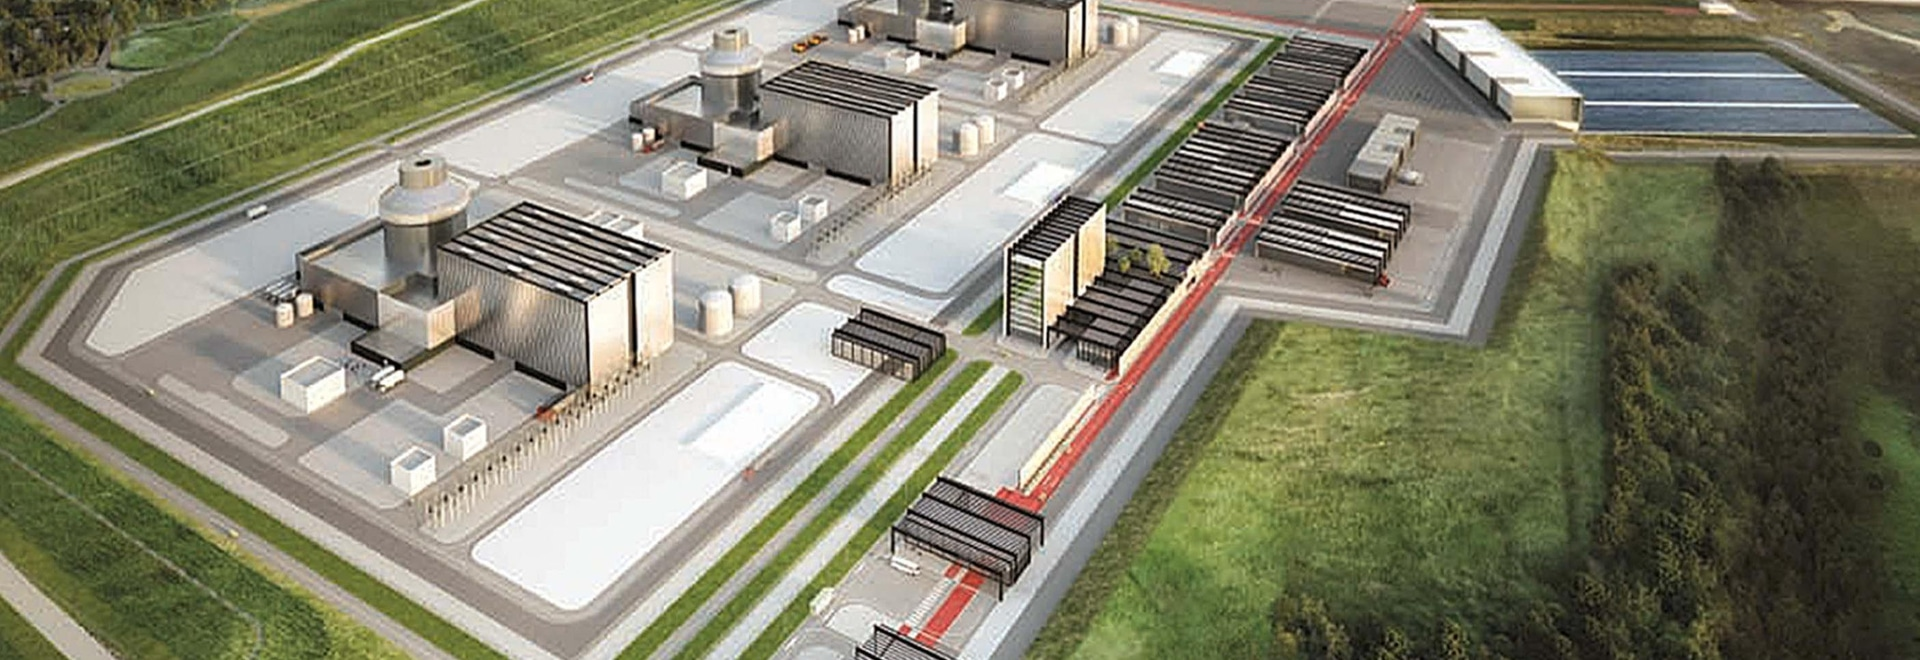 Artistic rendering of the Moorside nuclear power station